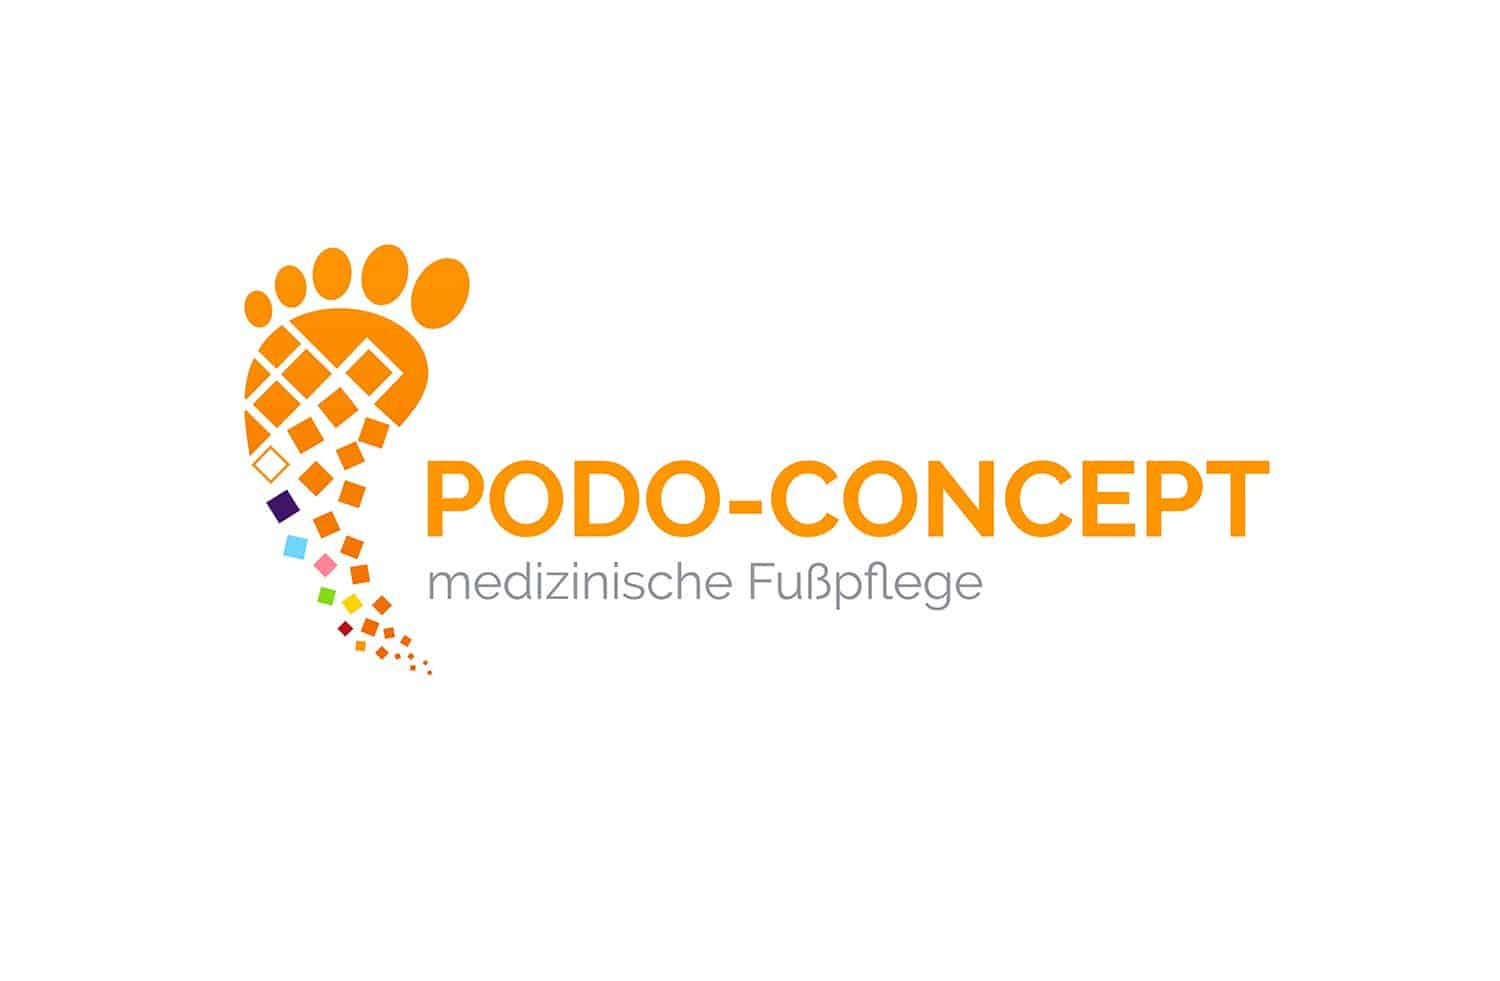 Logo Design Podo-Concept in farbverlauf orange